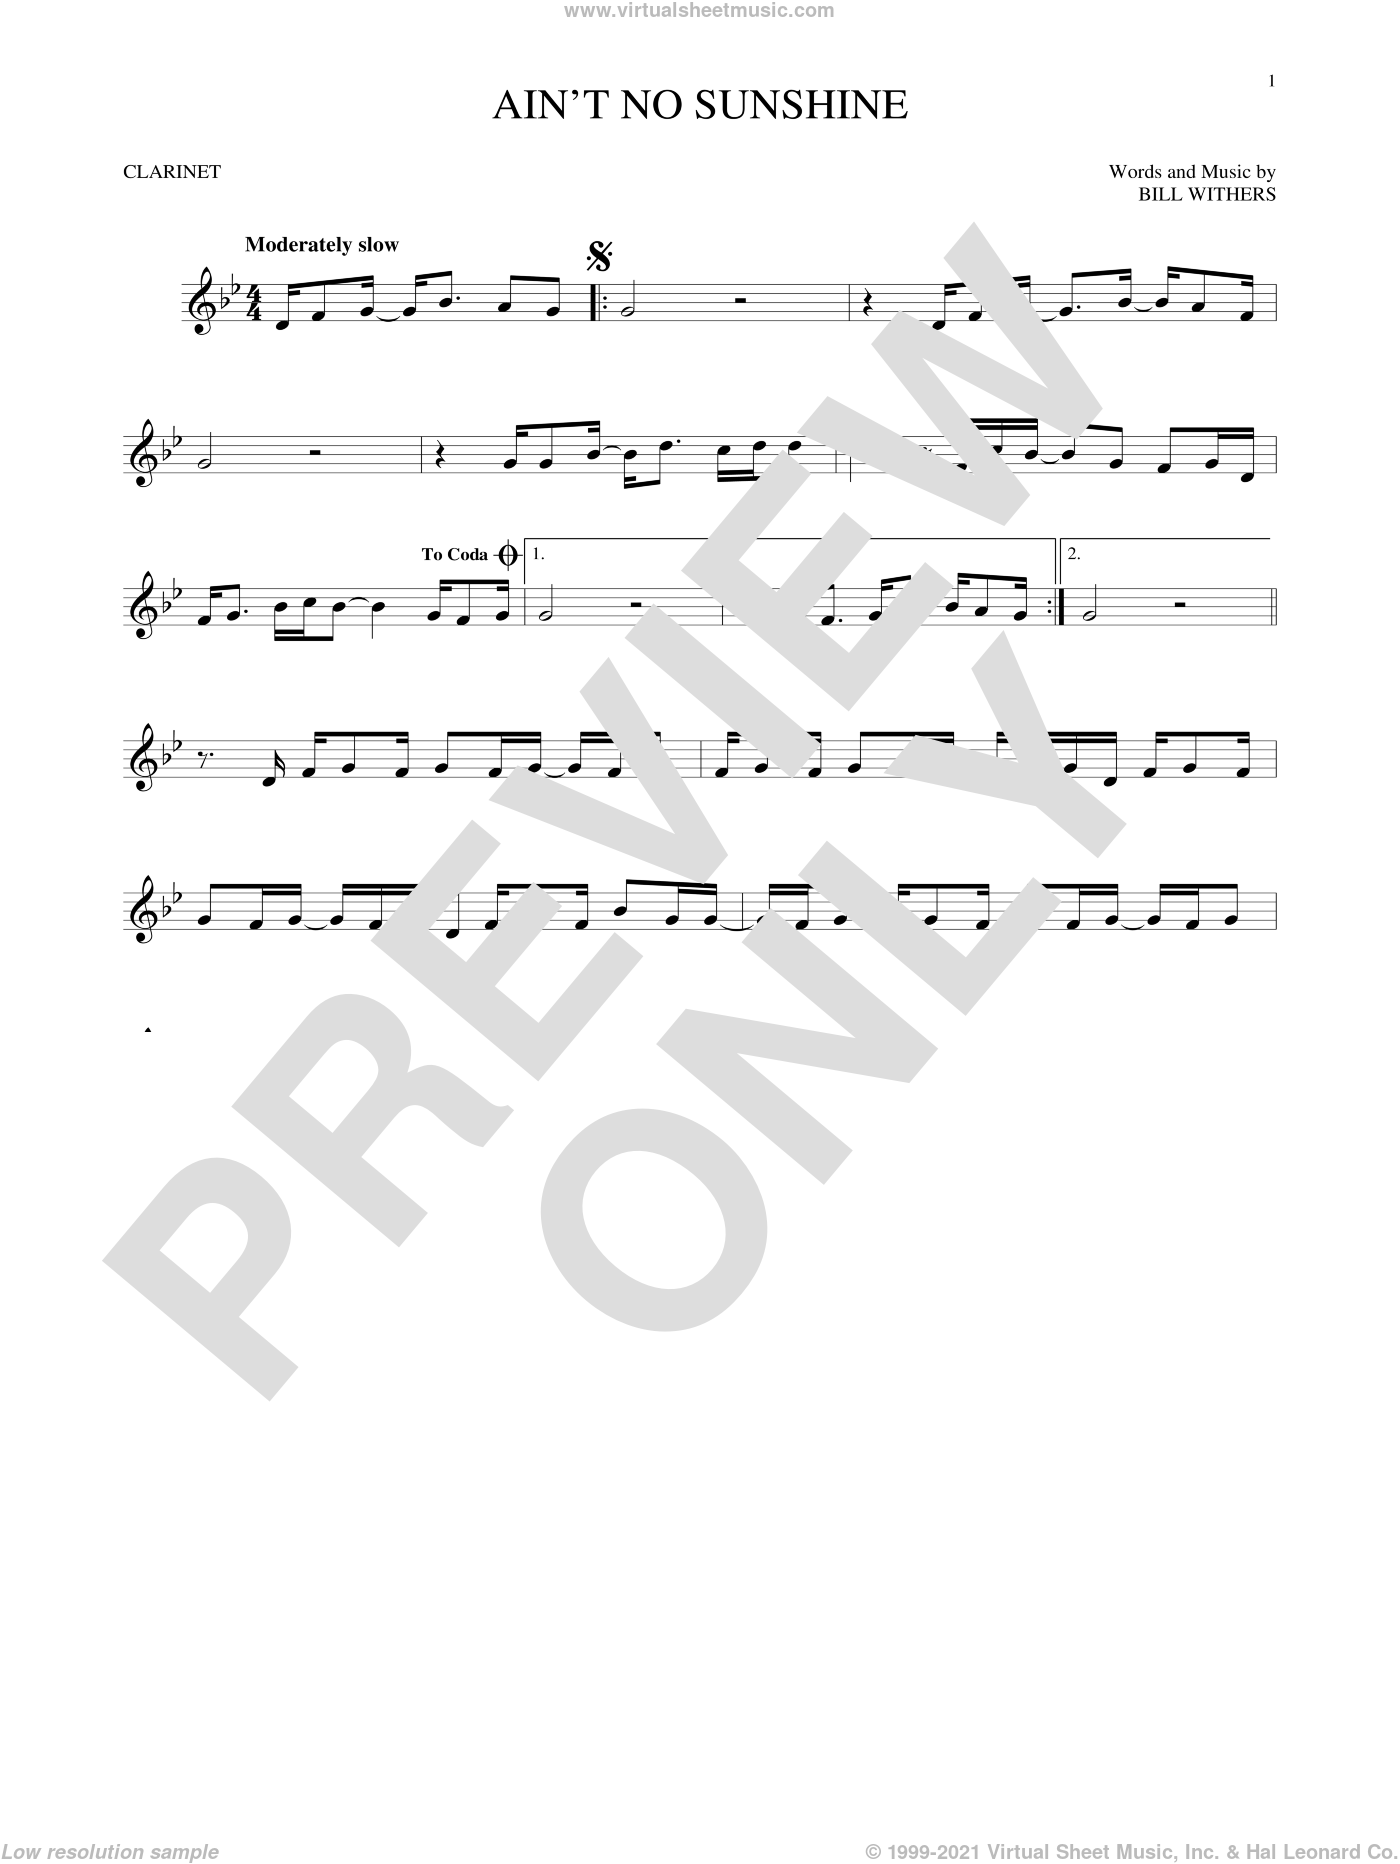 Ain't No Sunshine sheet music for clarinet solo by Bill Withers, intermediate skill level